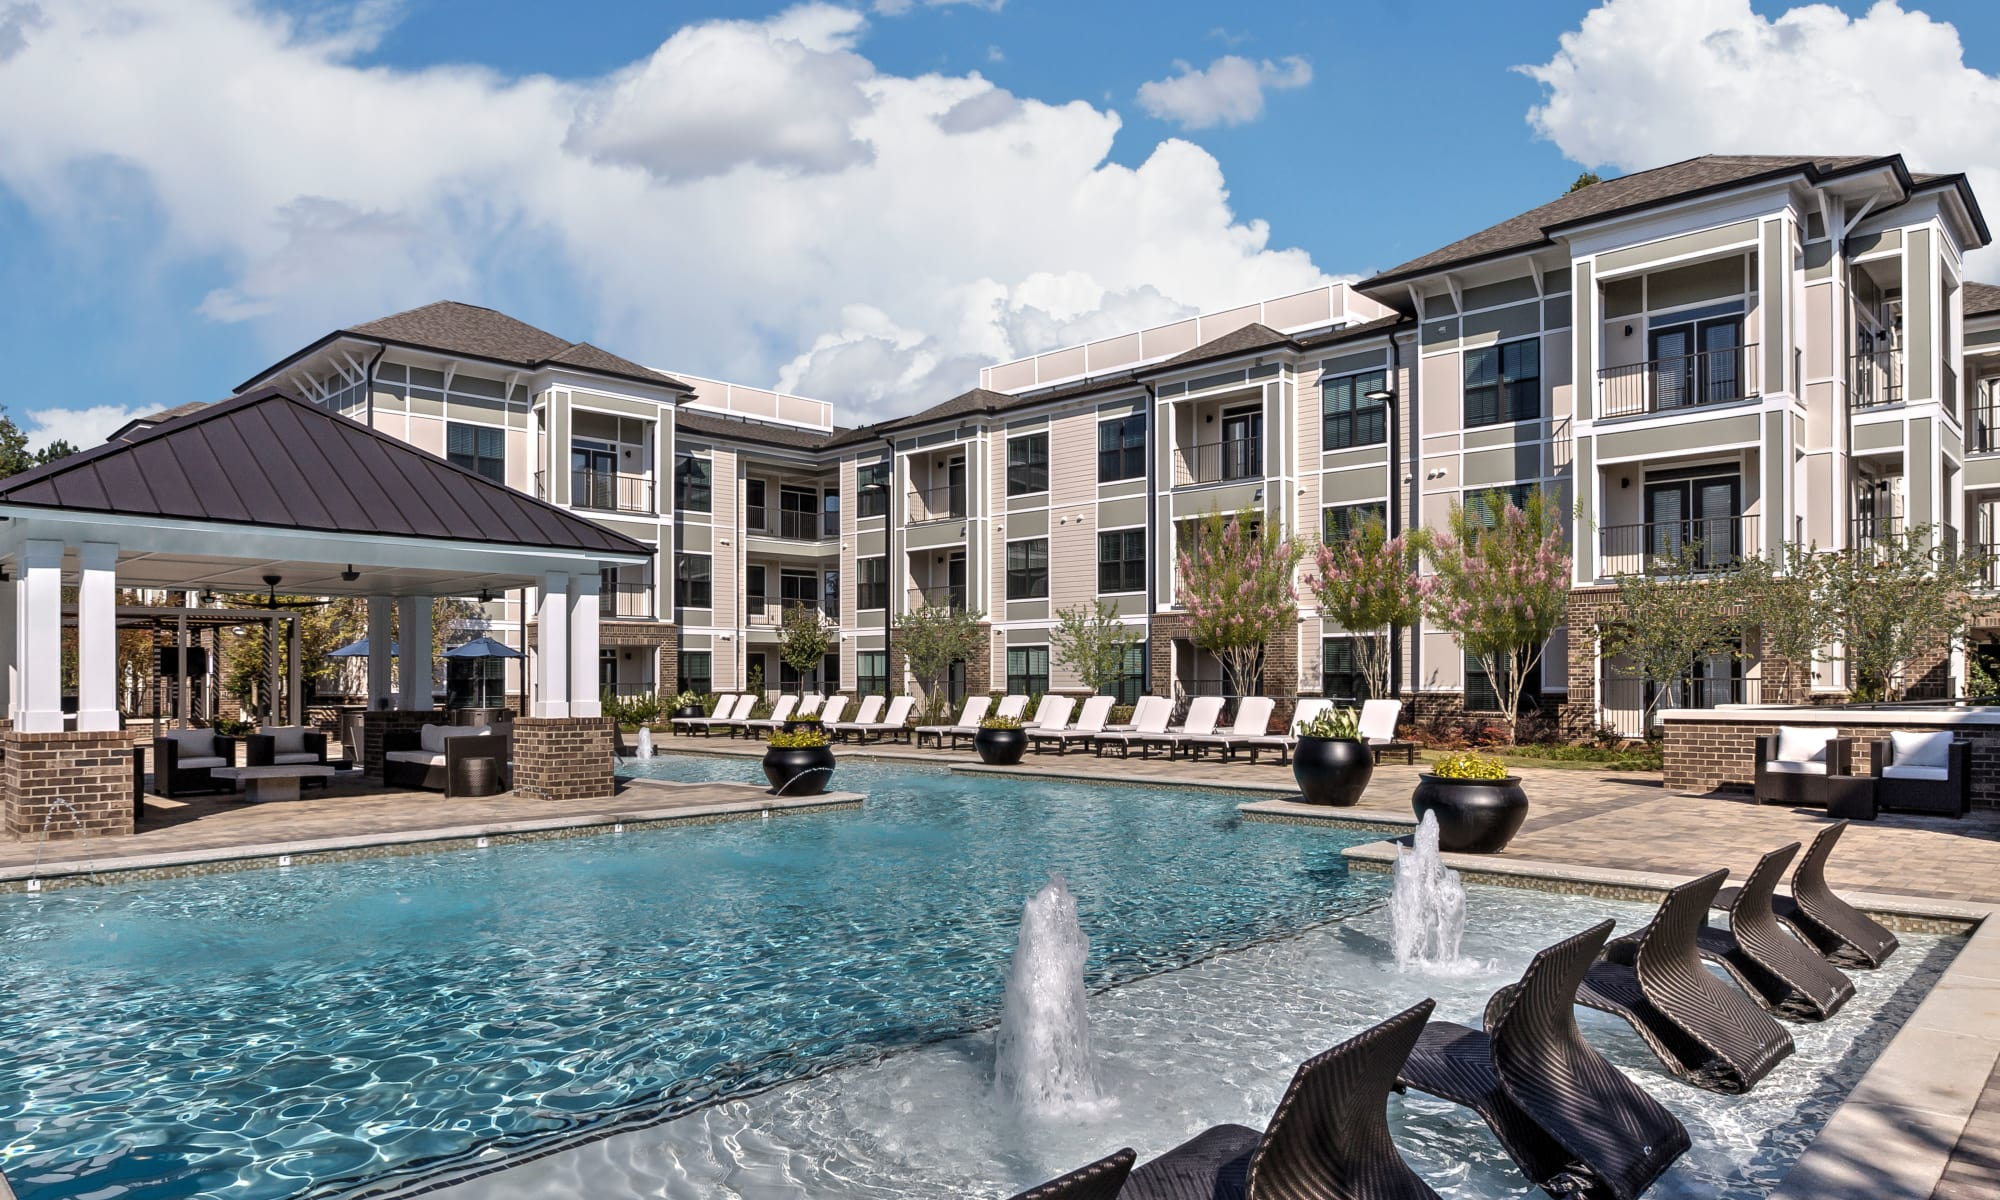 Luxury apartments at Juncture in Alpharetta, Georgia